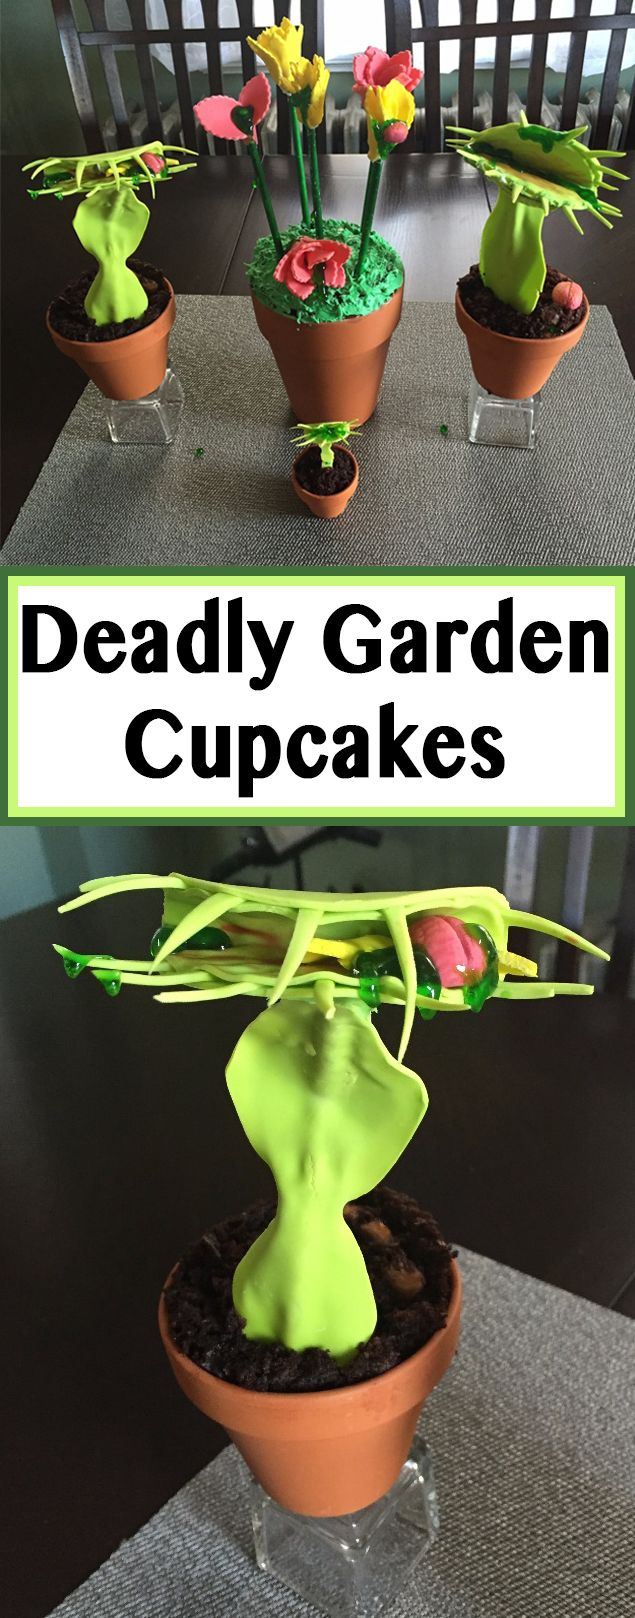 11 Best Venus Fly Traps Images On Pinterest Flytrap Robots Can Hunt And Catch Bugs For Meals Give Your Cupcakes A Twist With These Dangerous Little Decorations Perfect Springtime